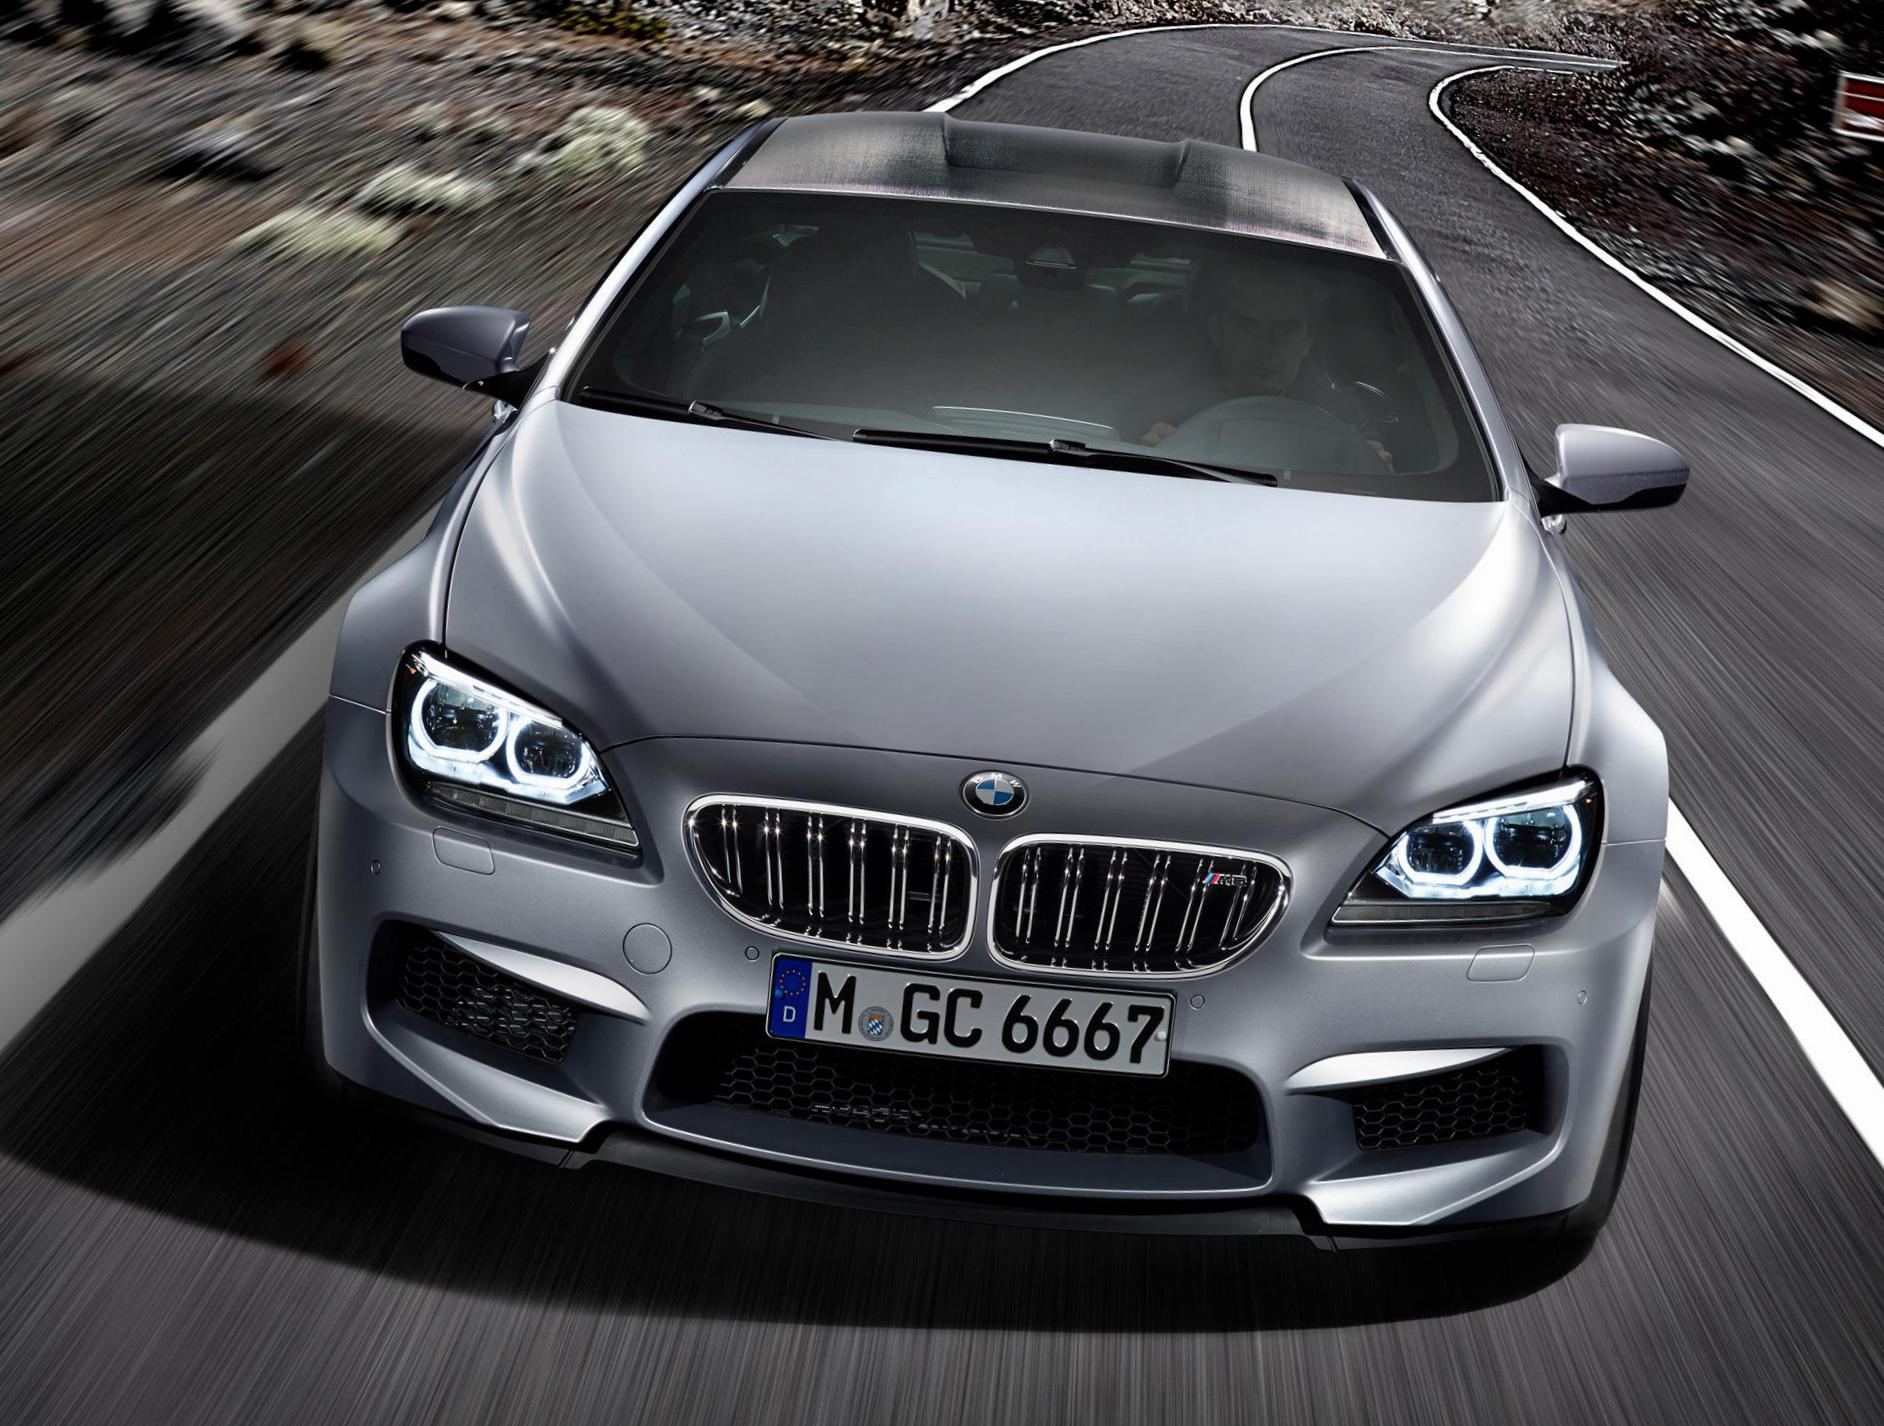 BMW M6 Gran Coupe (F06) configuration 2012